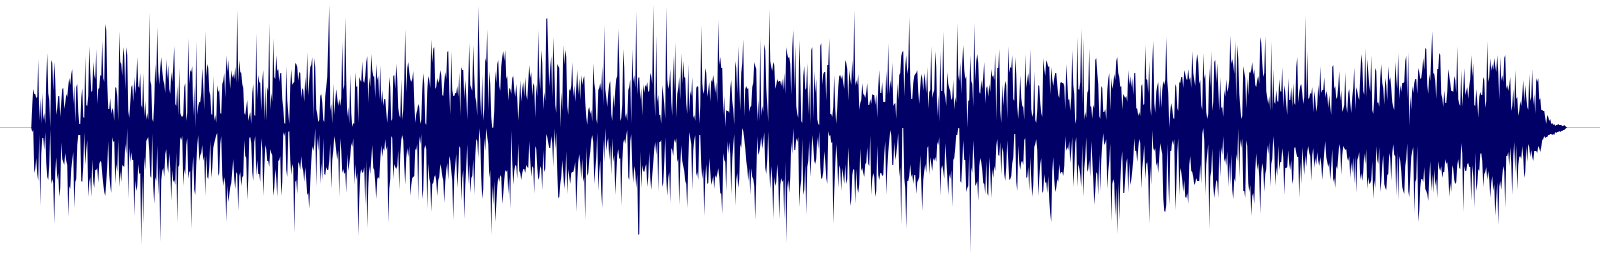 waveform of track #191412